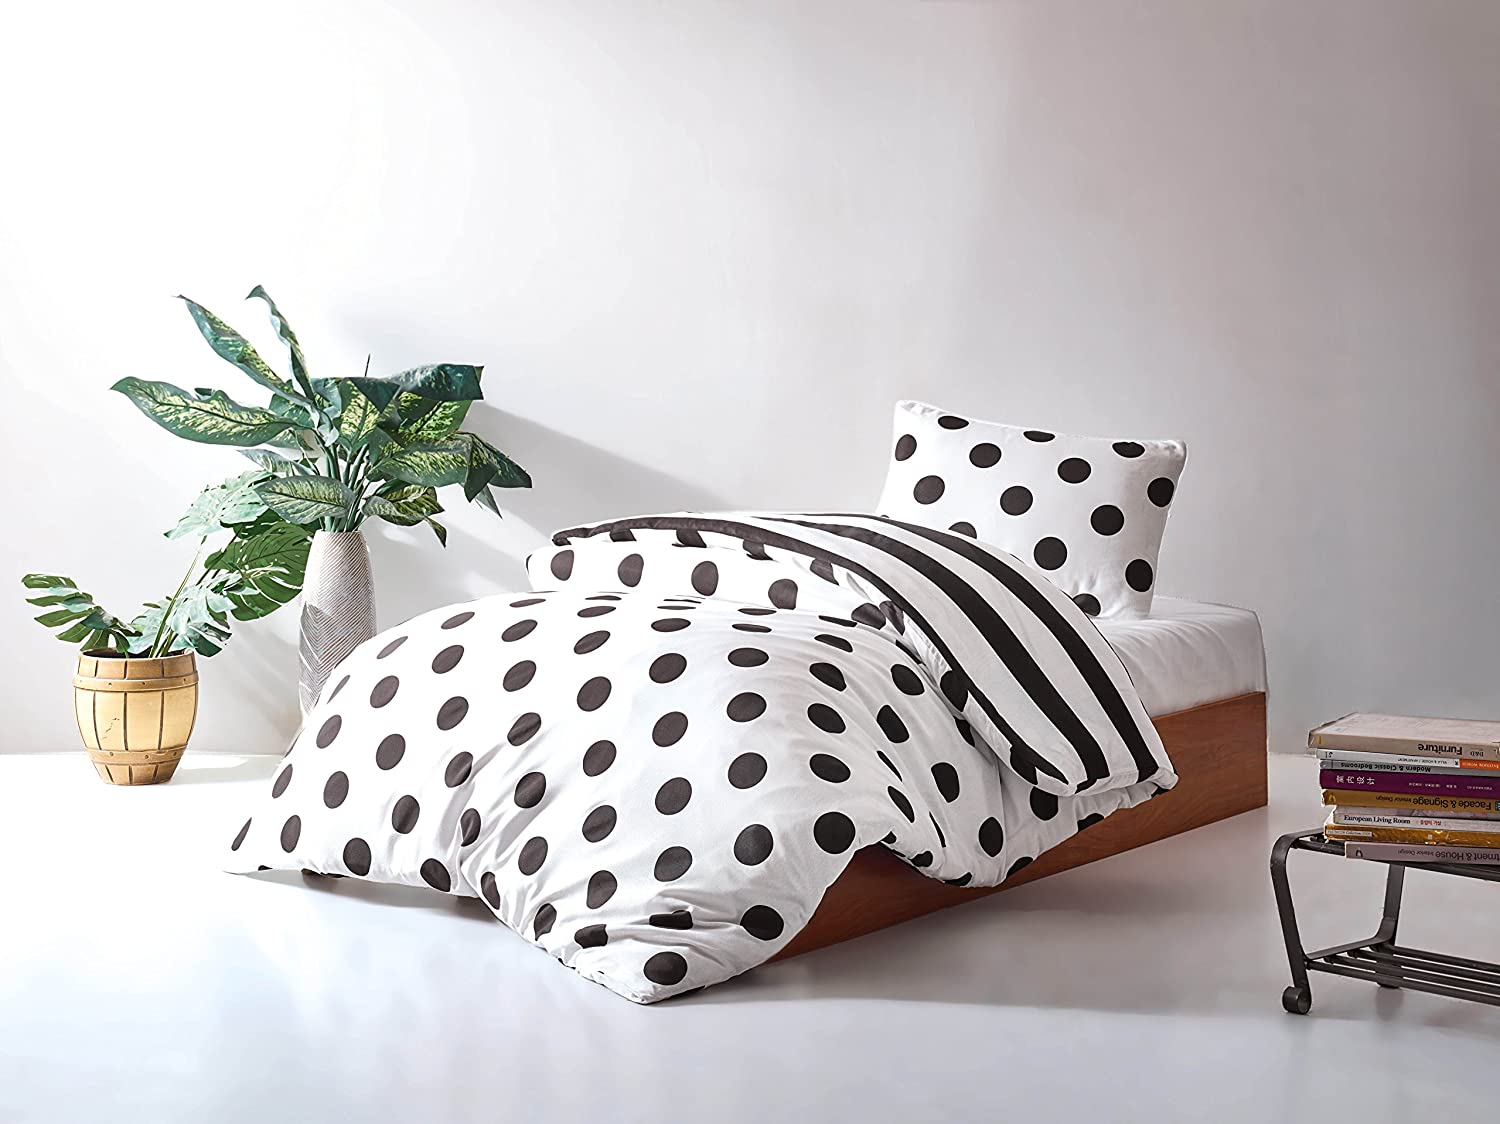 DecoMood Stripped Polka Dot Bedding Set, Single/Twin Size Quilt/Duvet Cover Set, Black and White Girls Boys Bed Set, Reversible (3 Pcs)